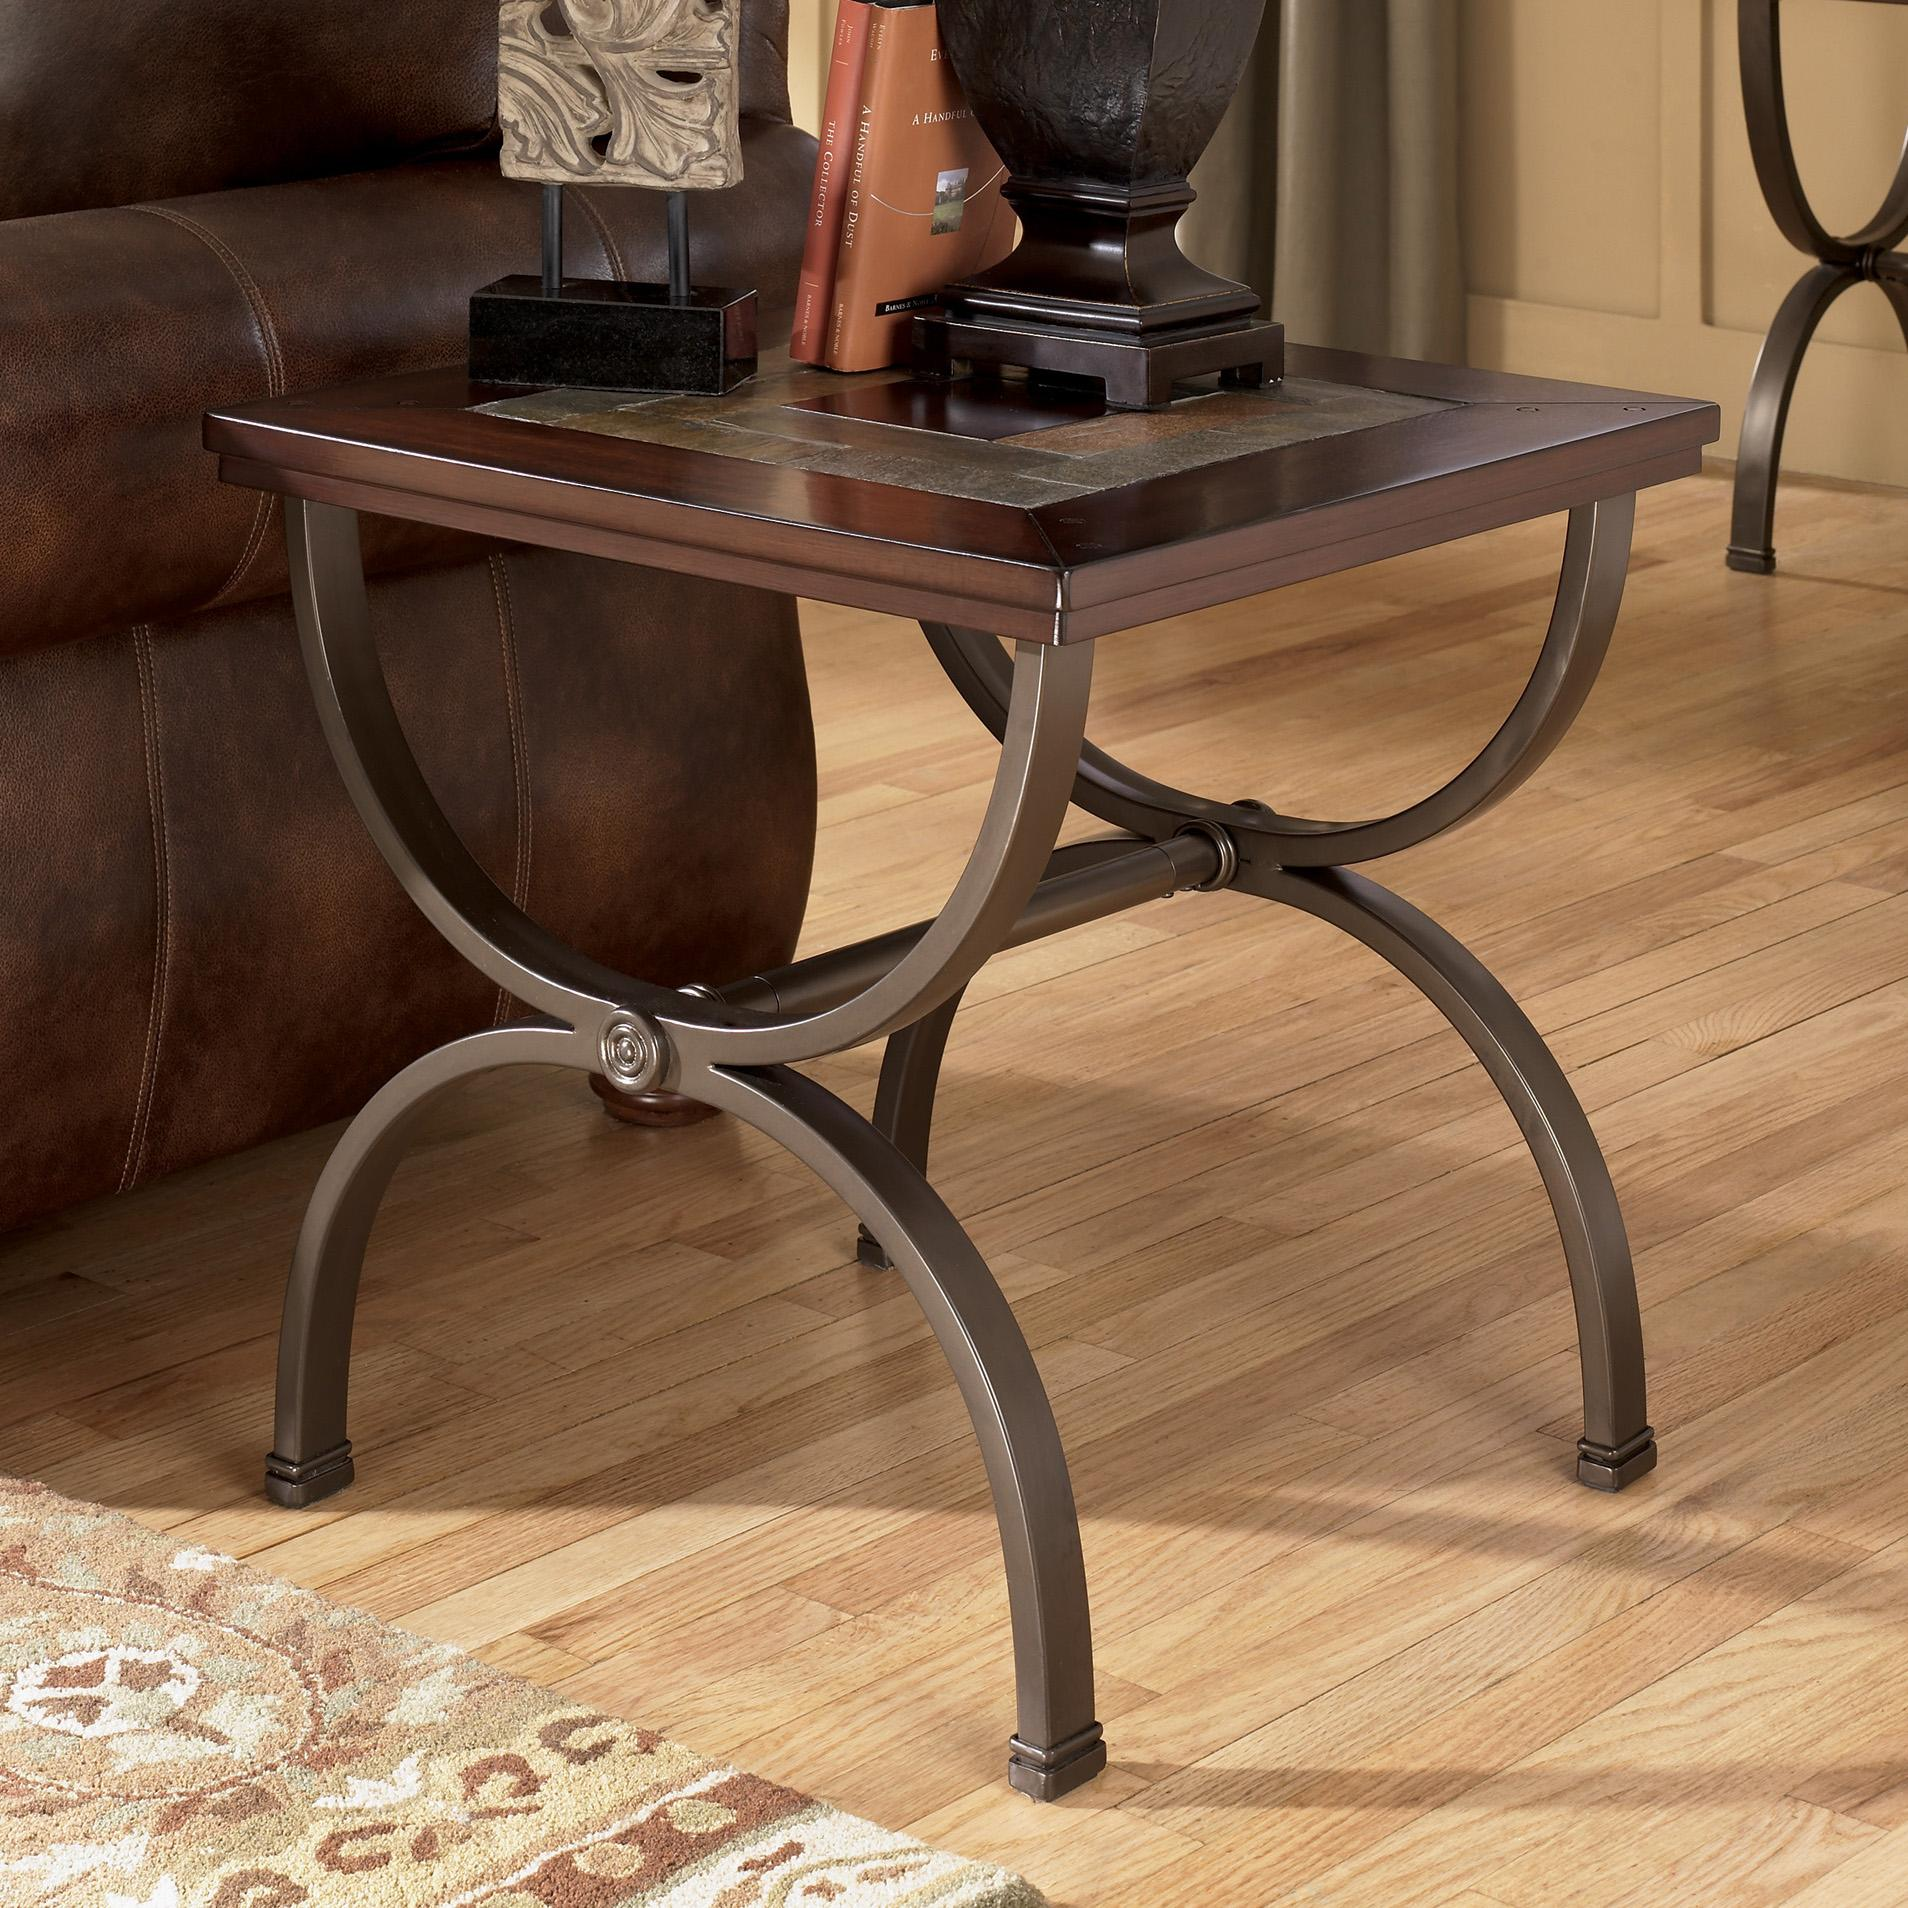 Signature Design by Ashley Zander Square End Table - Item Number: T415-2